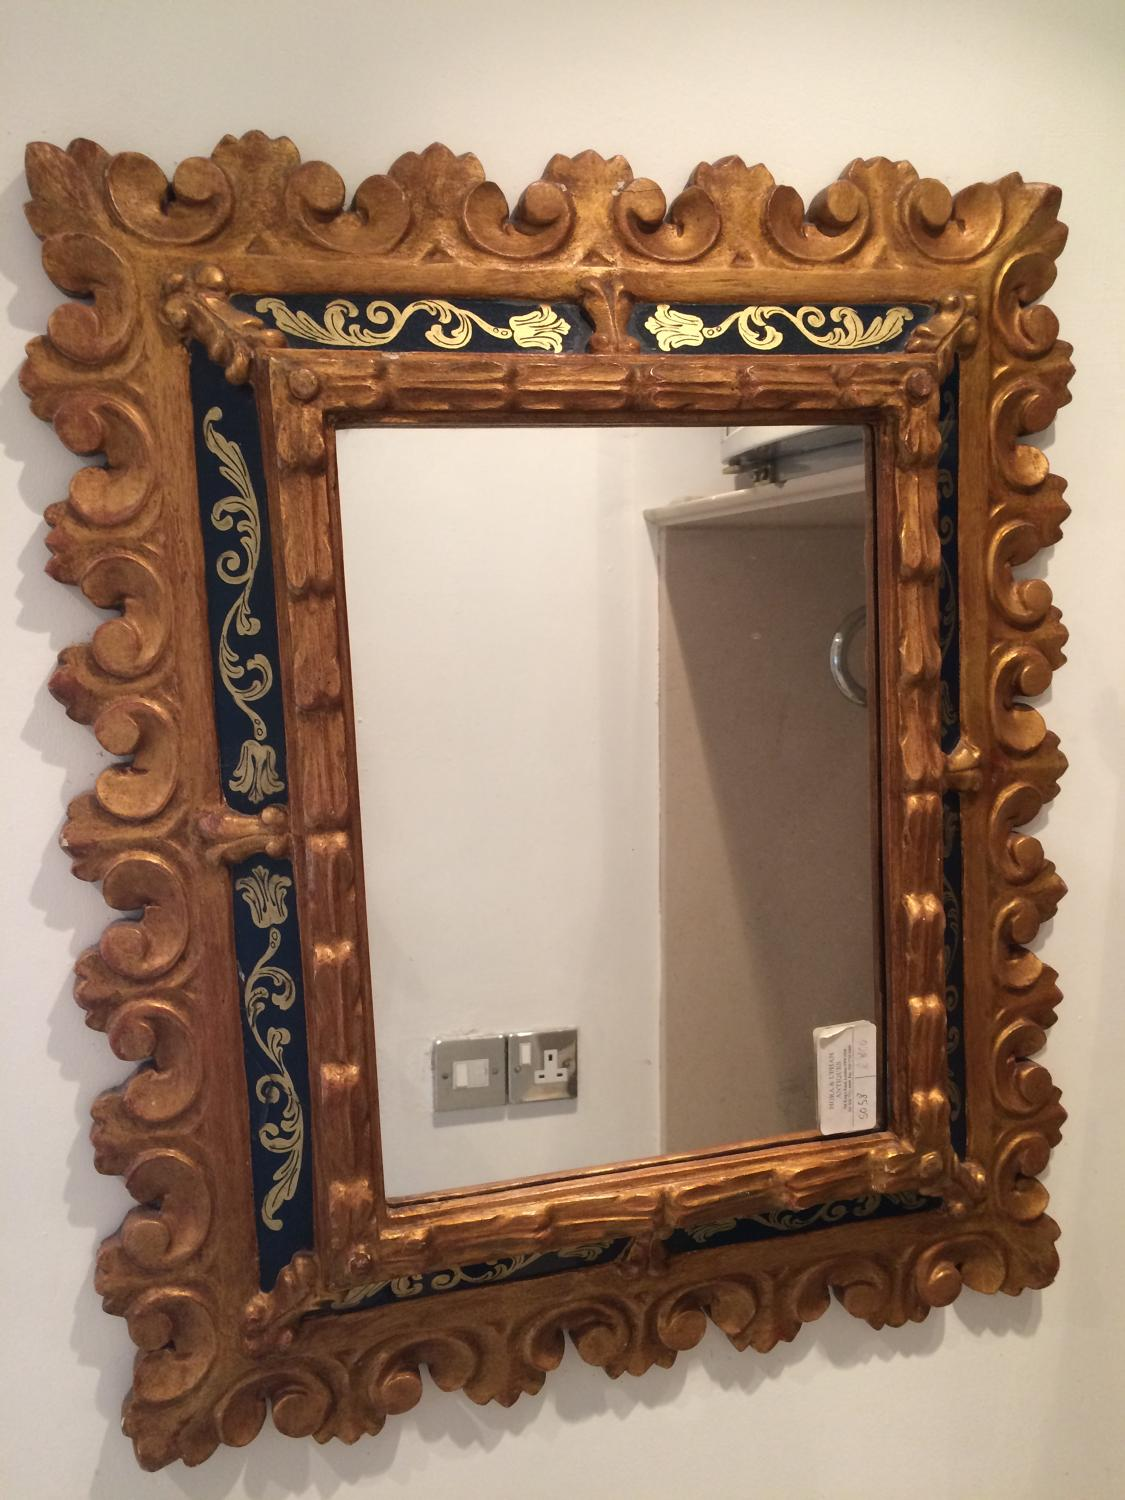 A Small Carved Wood And Gilded Mirror